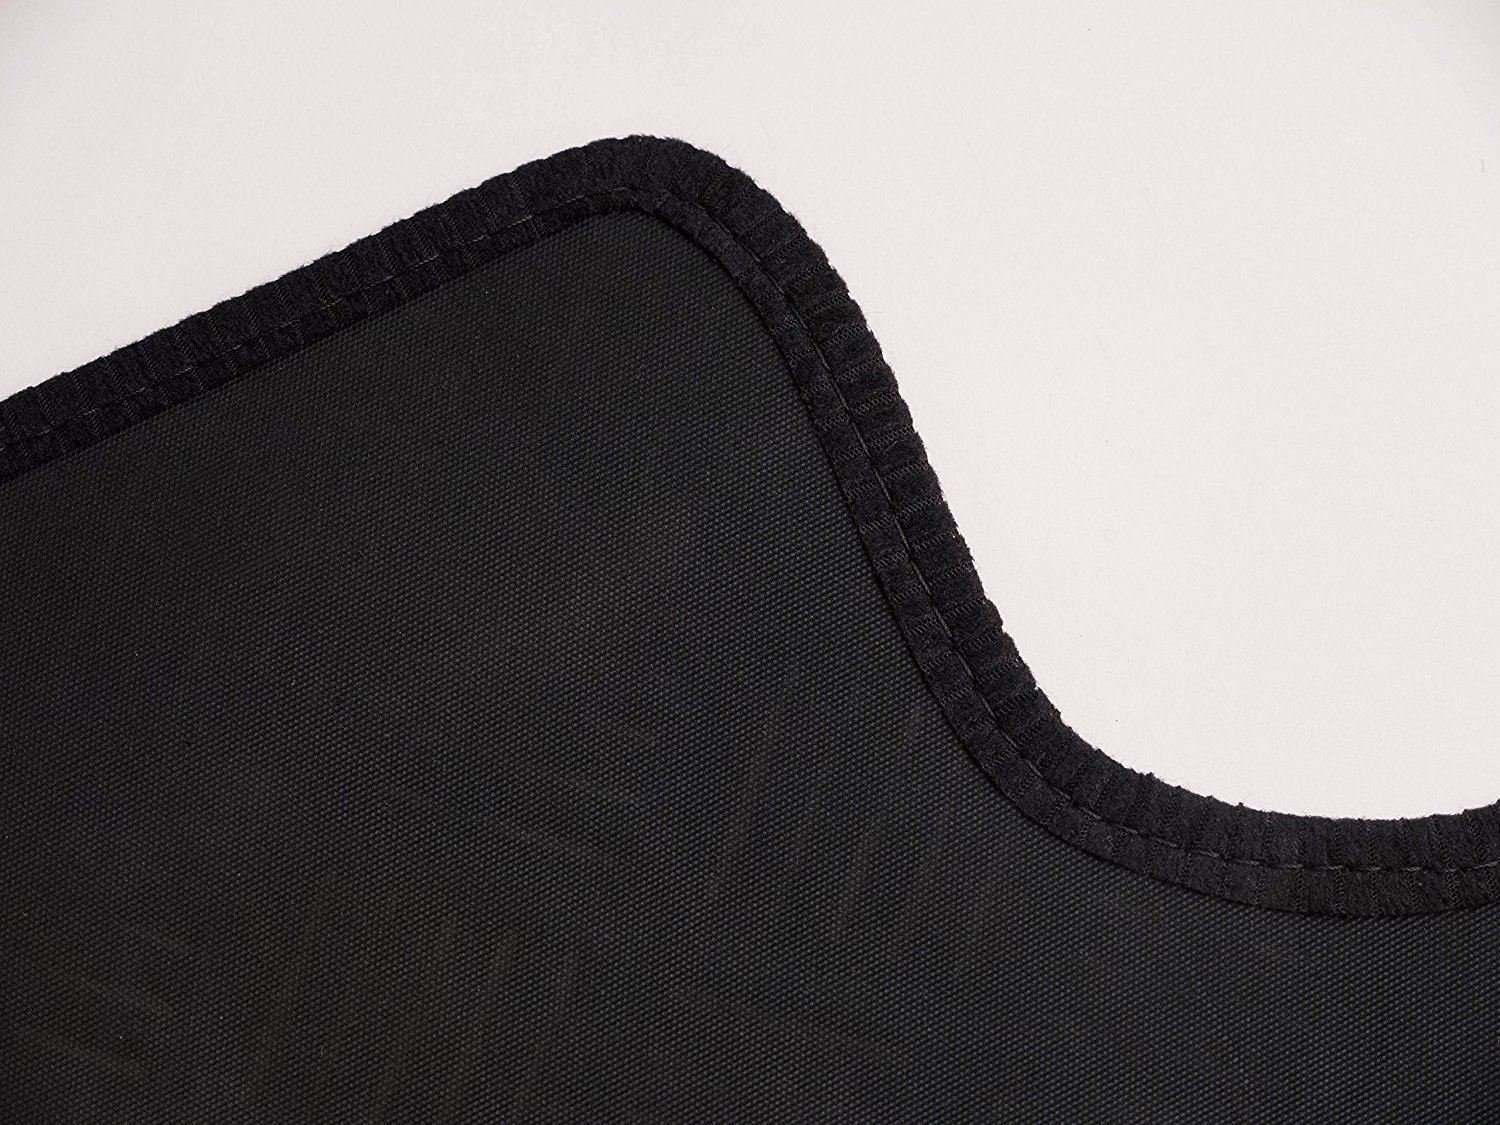 UKB4C Fully Tailored Black Rubber Car Mats for T5 Facelift //T6 Set of 1xl